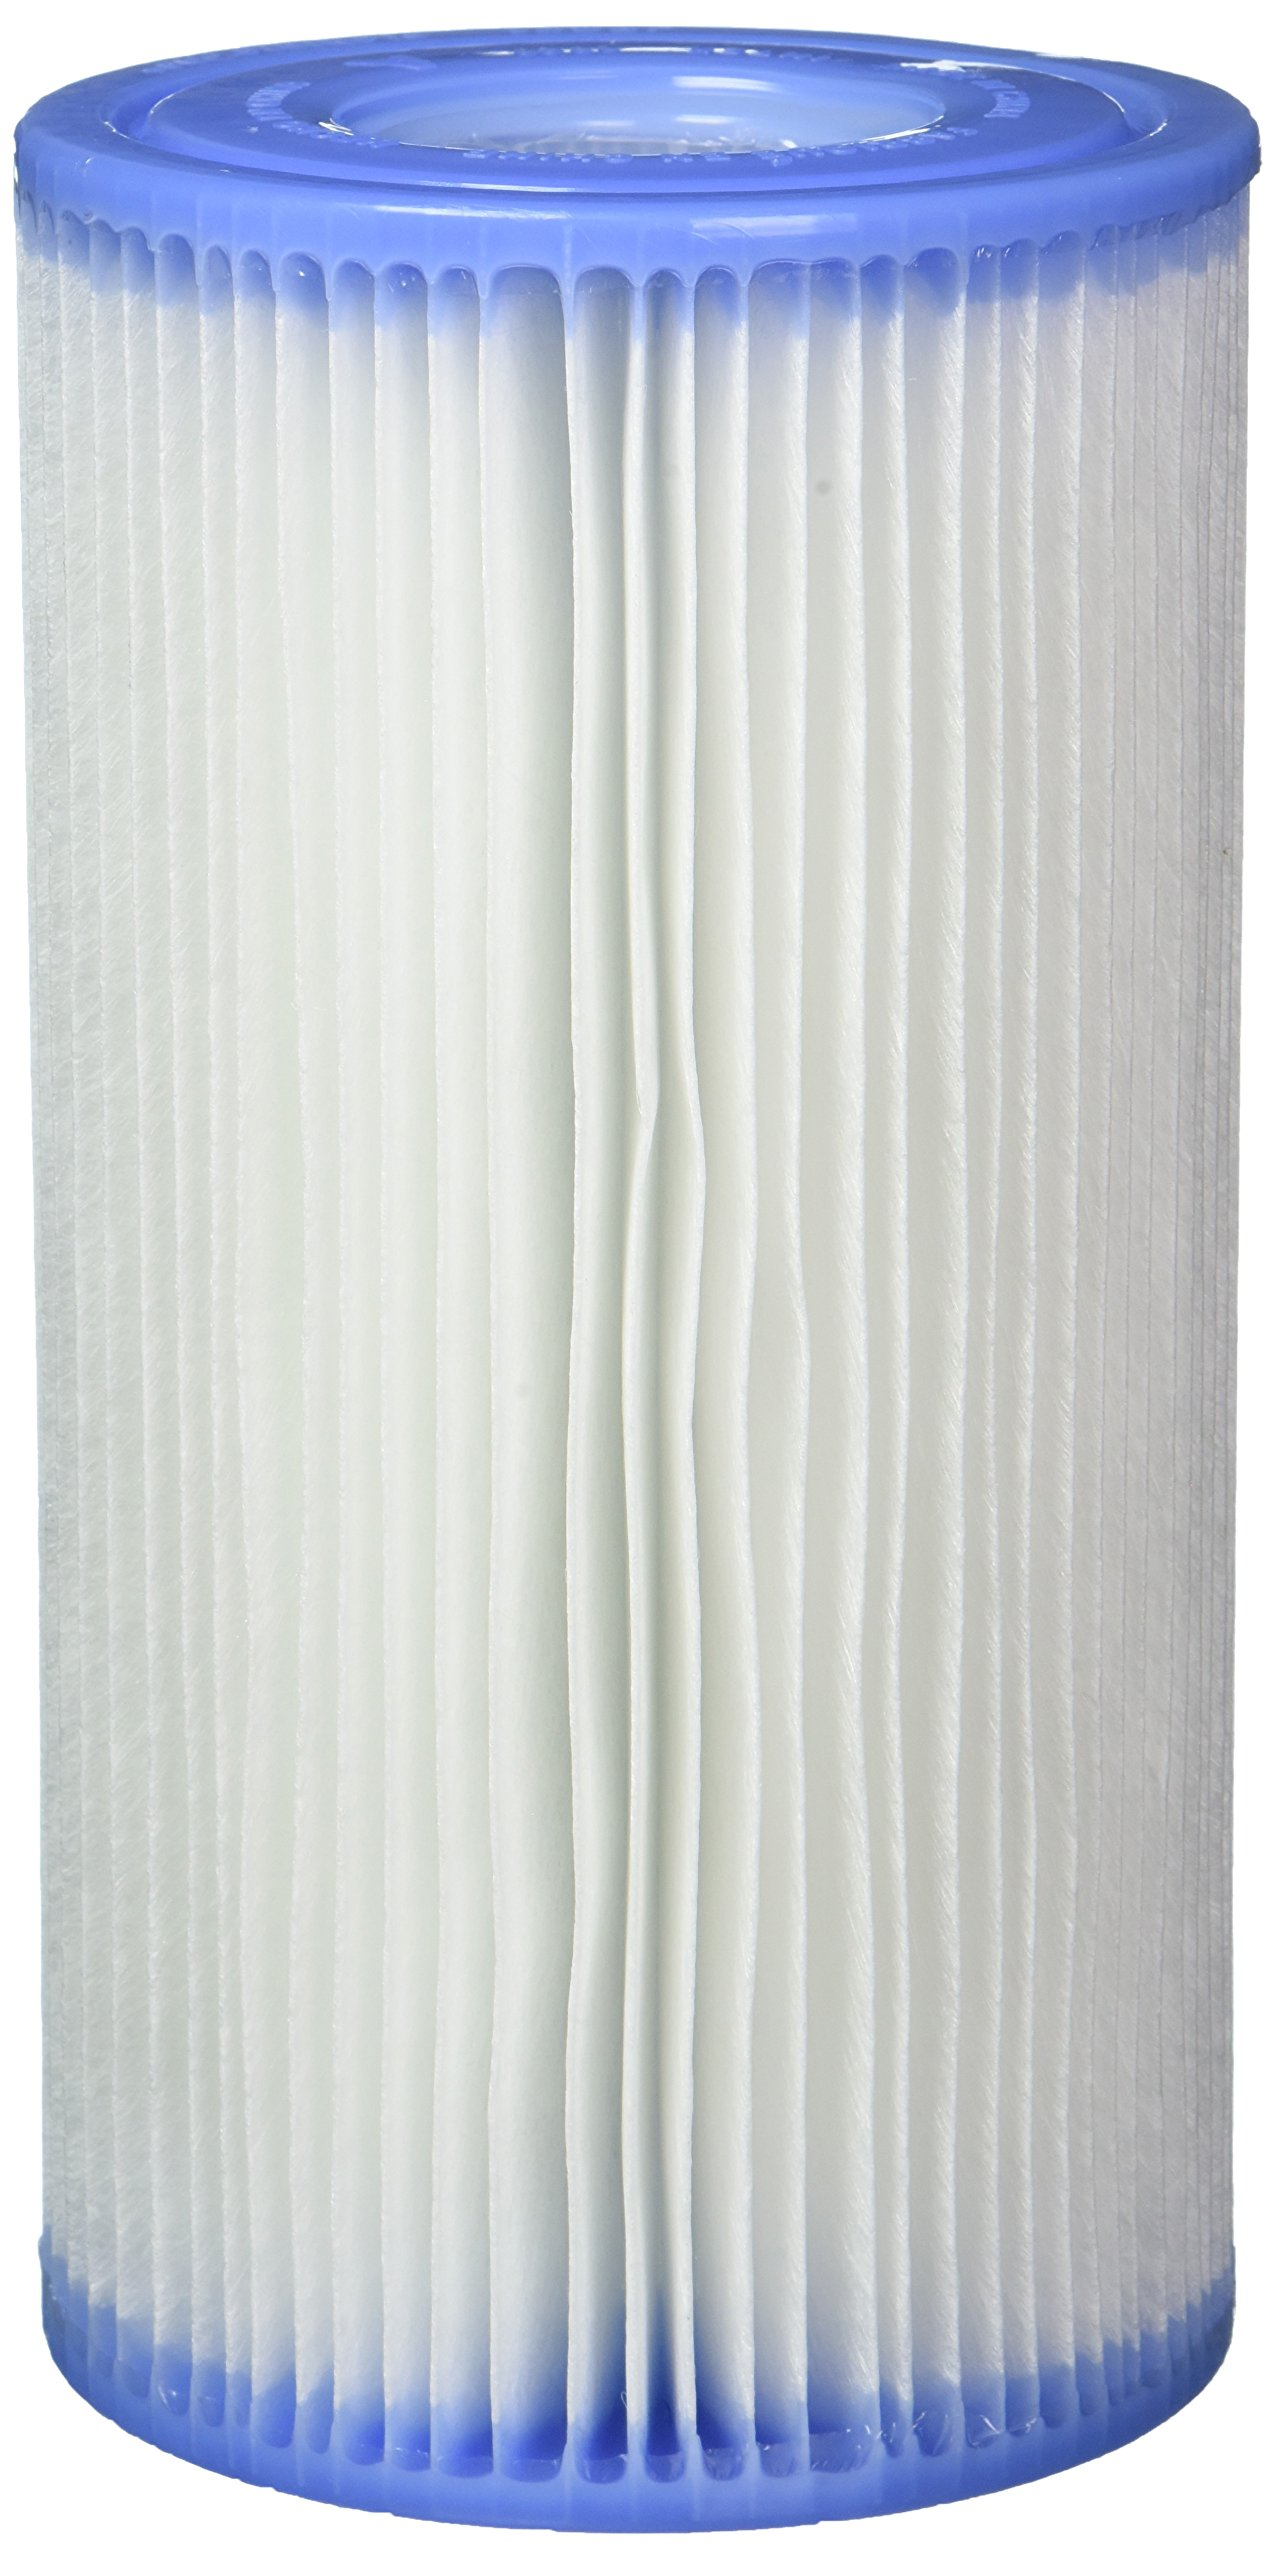 Replacement Intex Pool Filter Cartridge - Type A - 6 Pack